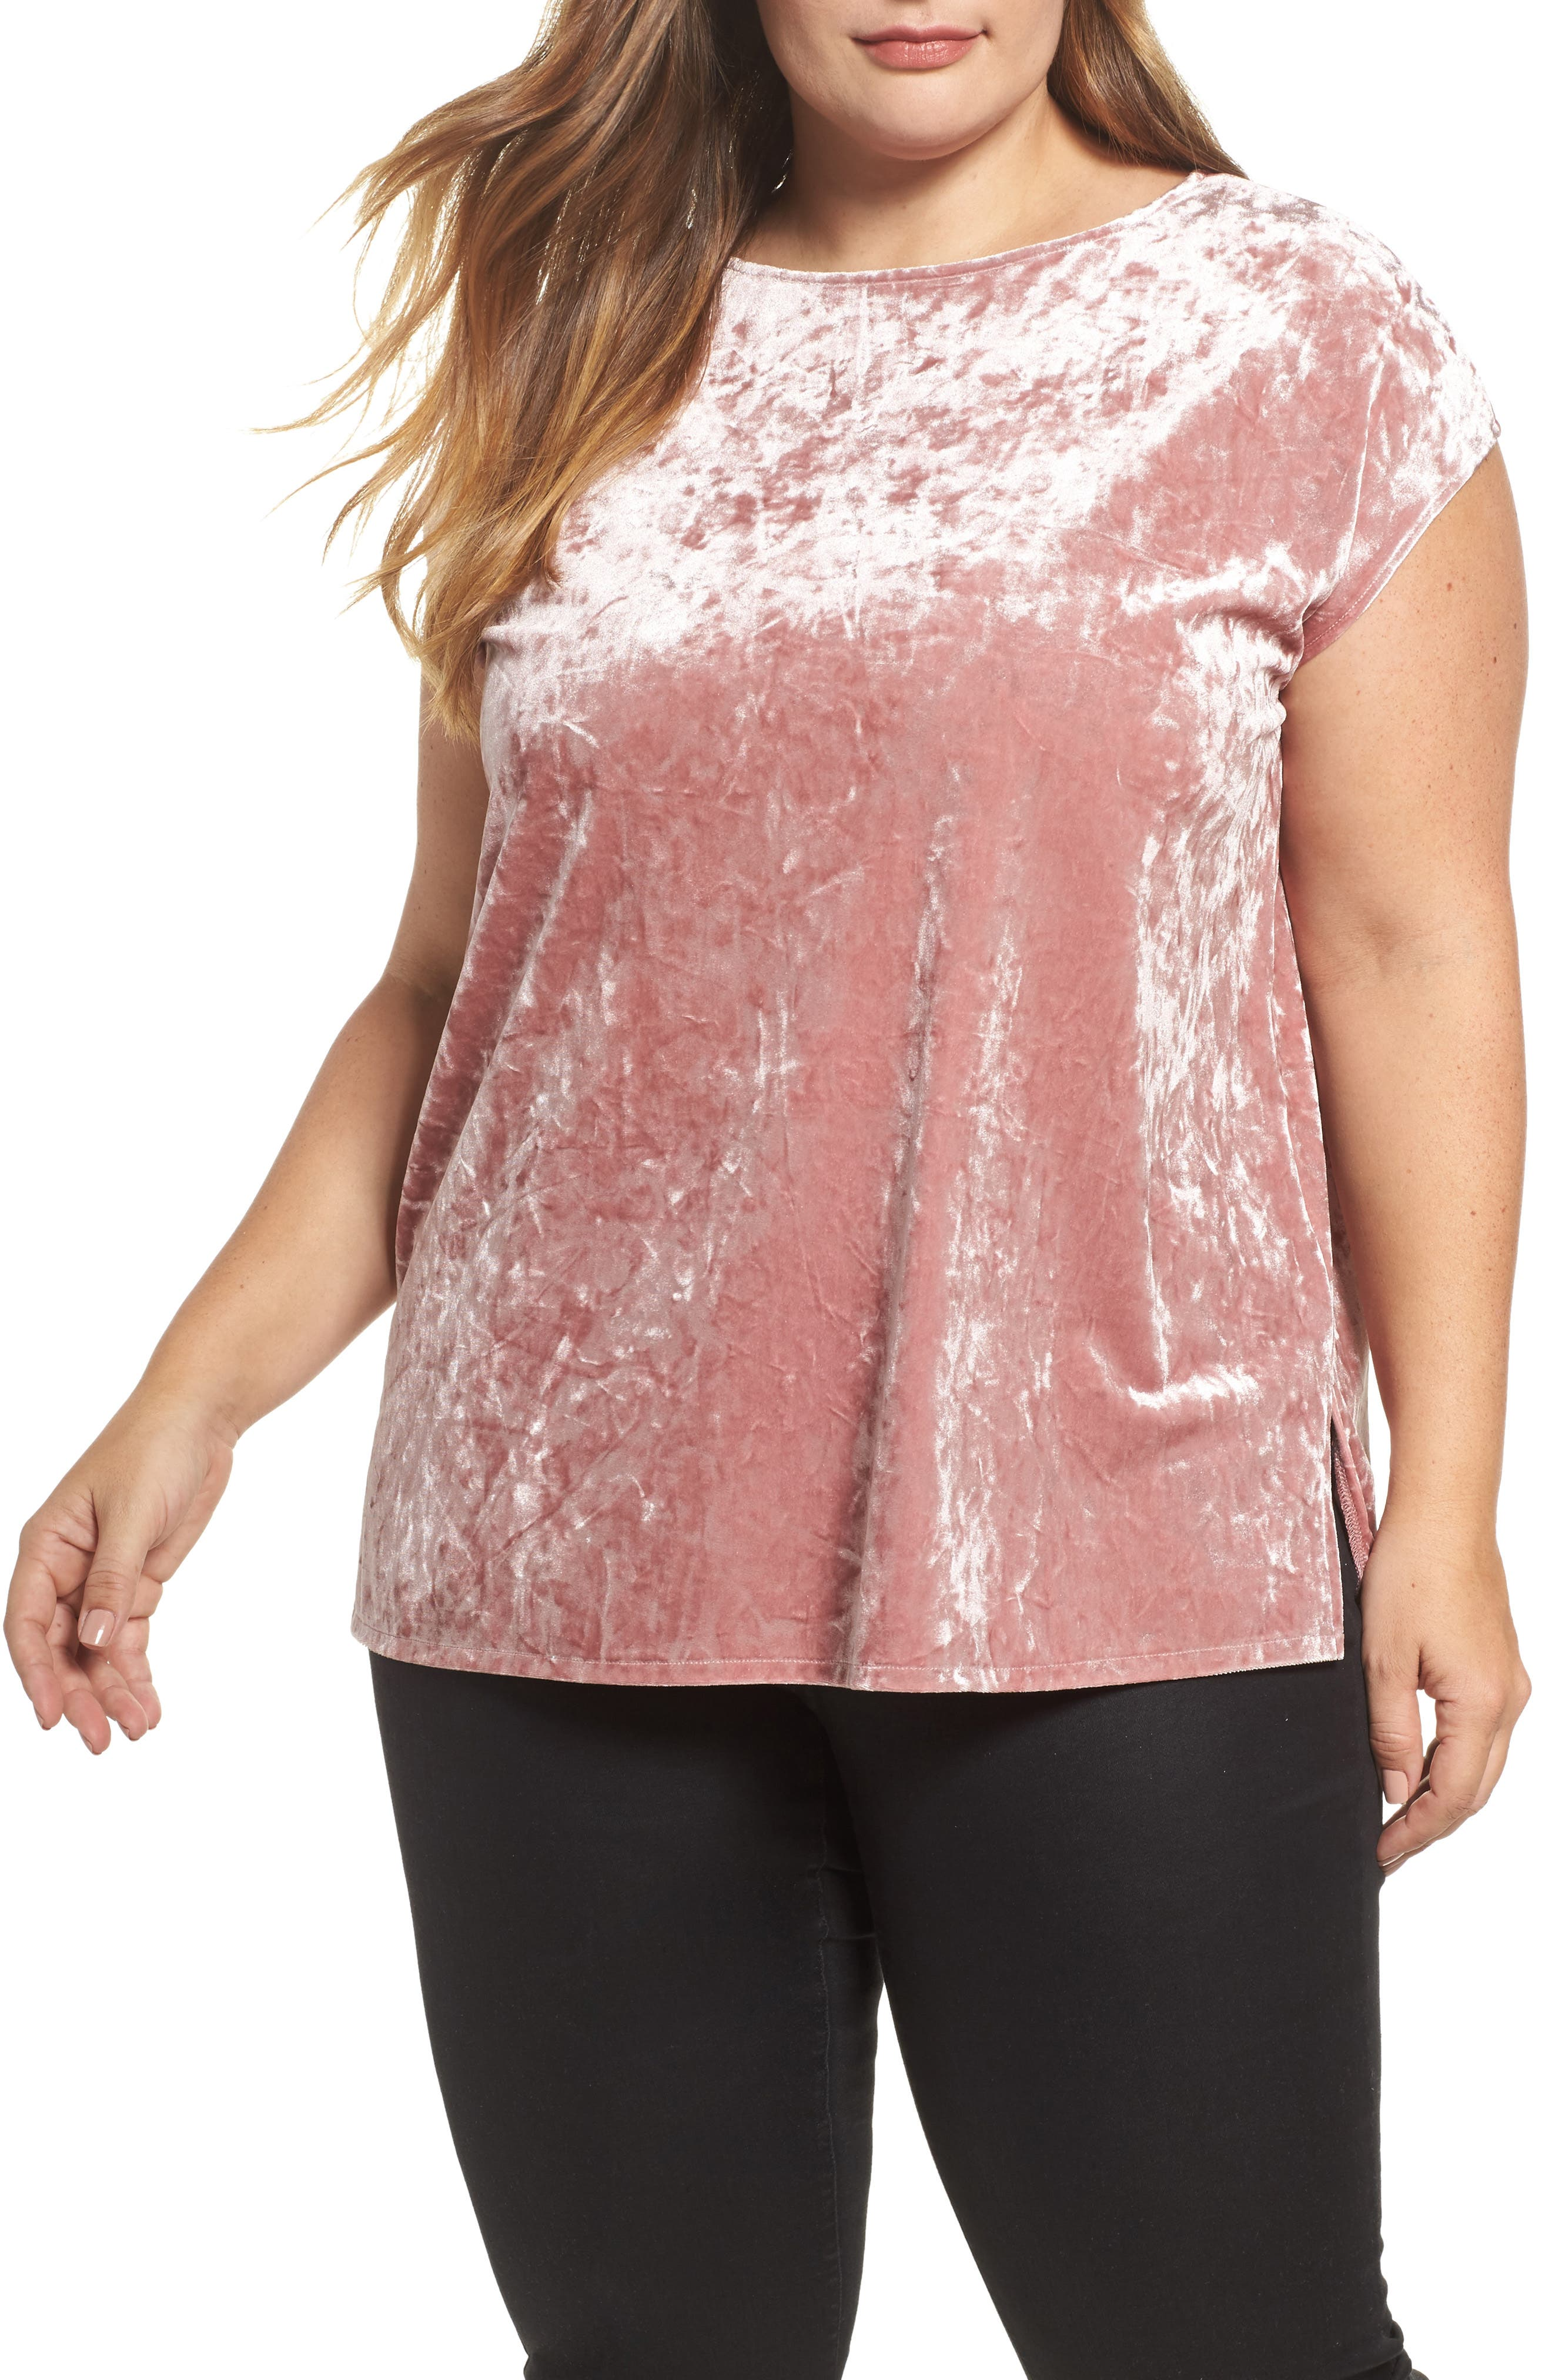 Vince Camuto Crushed Velvet Knit Tee (Plus Size)